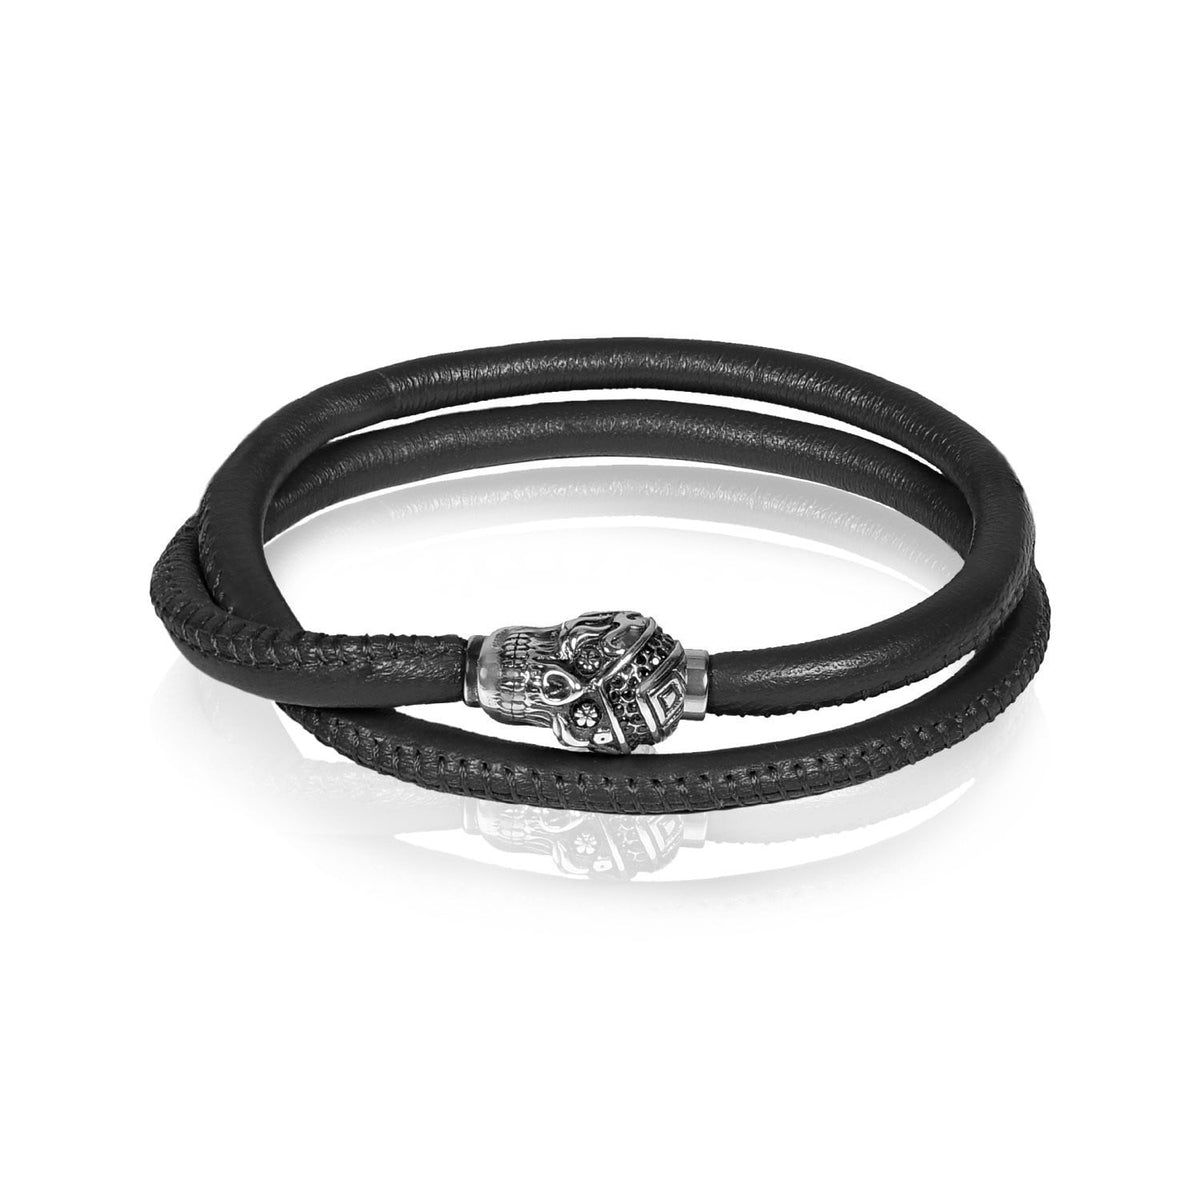 A.R.Z Steel - Stainless Steel Skull Dark Brown Bracelet